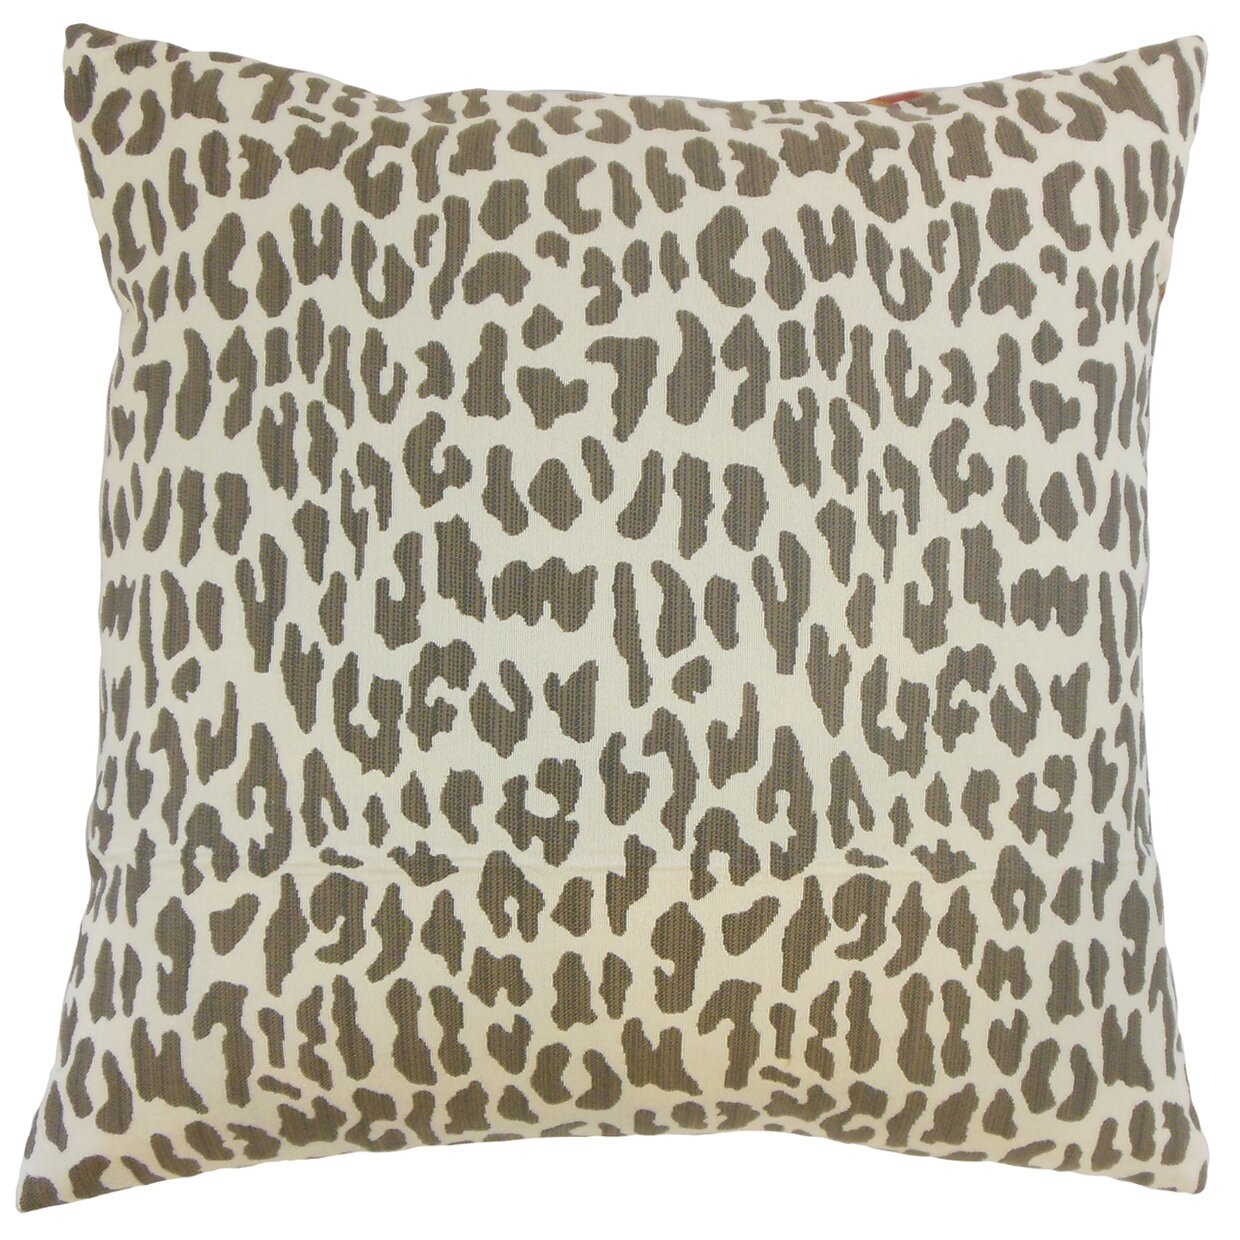 Animal Print Pillows For Couch : The Pillow Collection Ilandere Animal Print Throw Pillow & Reviews Wayfair